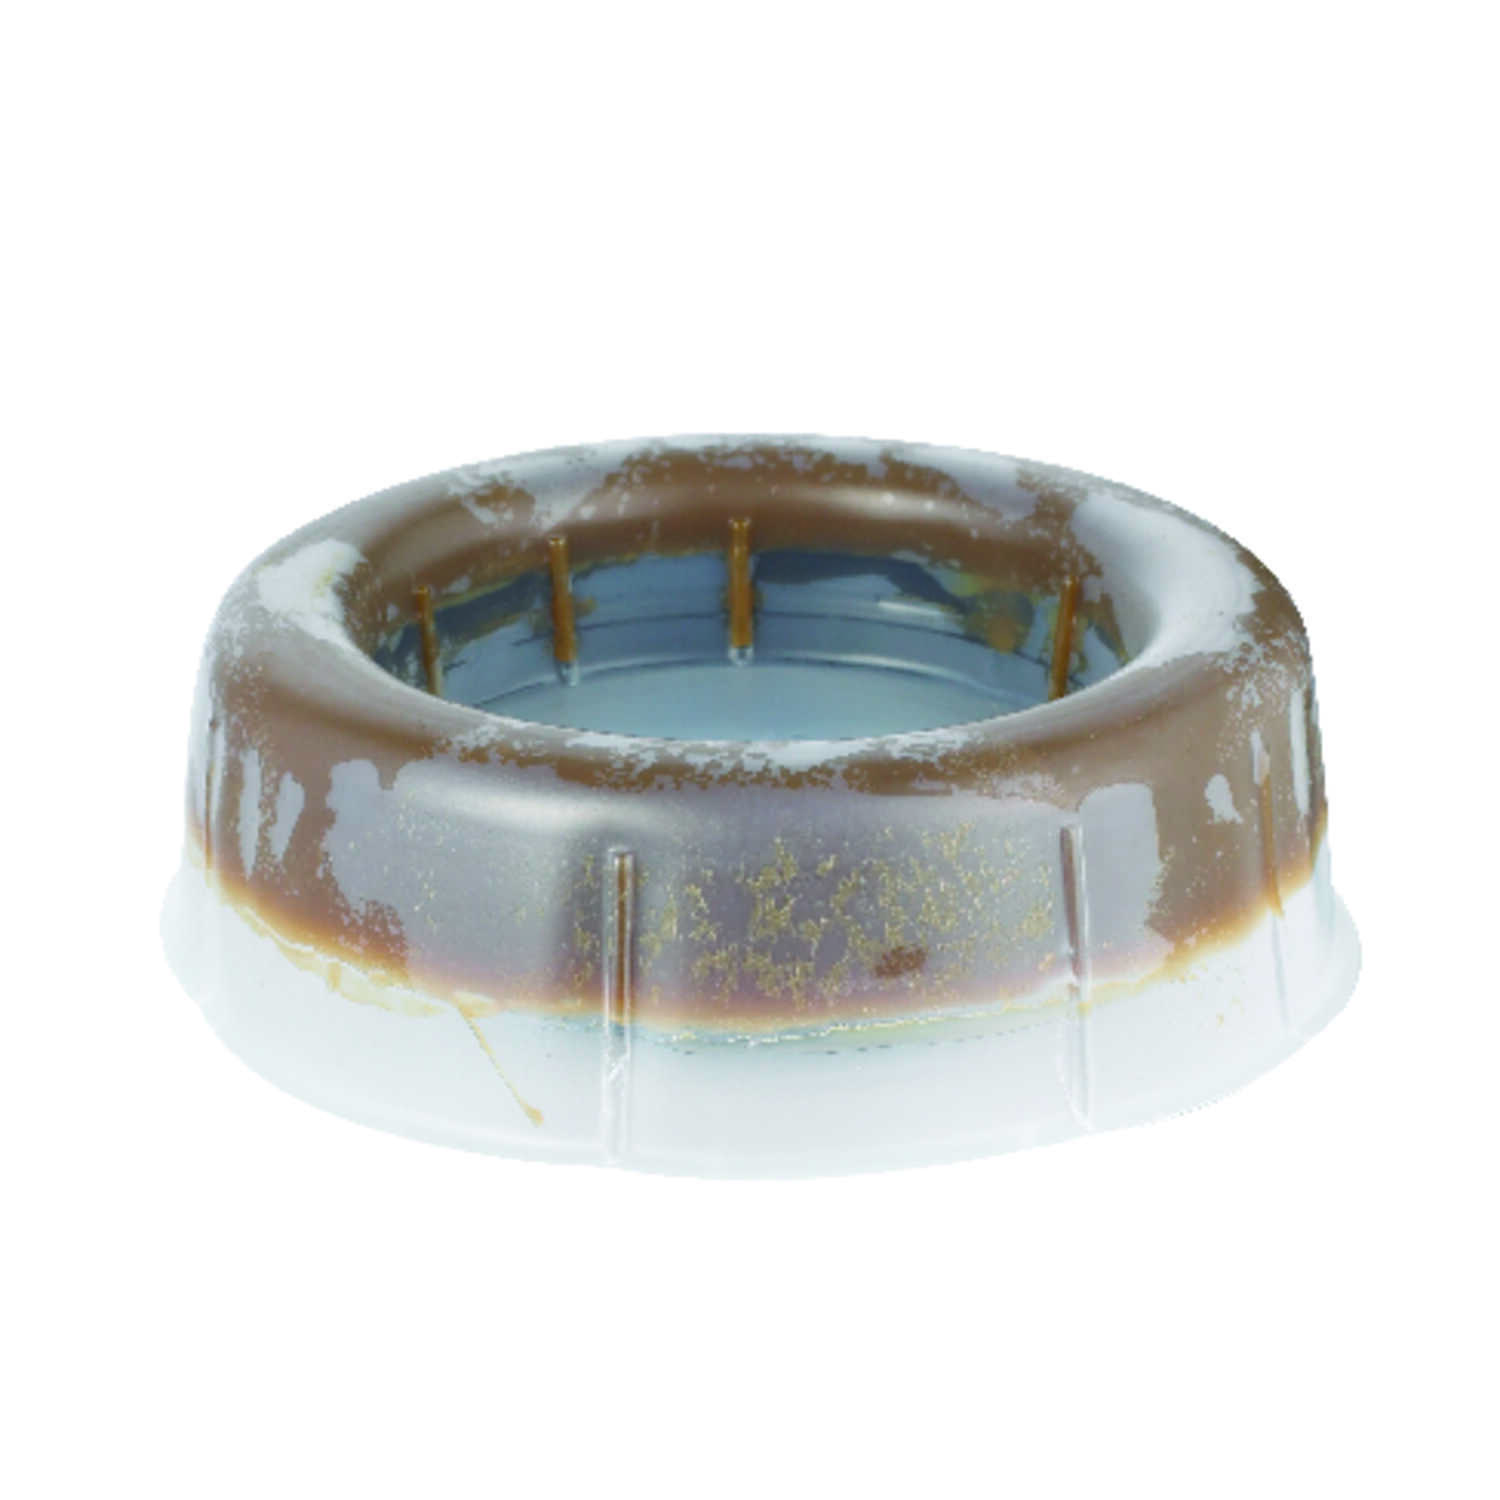 Harvey's  3 ID  4 OD  Polyethylene  Wax Ring with Flange